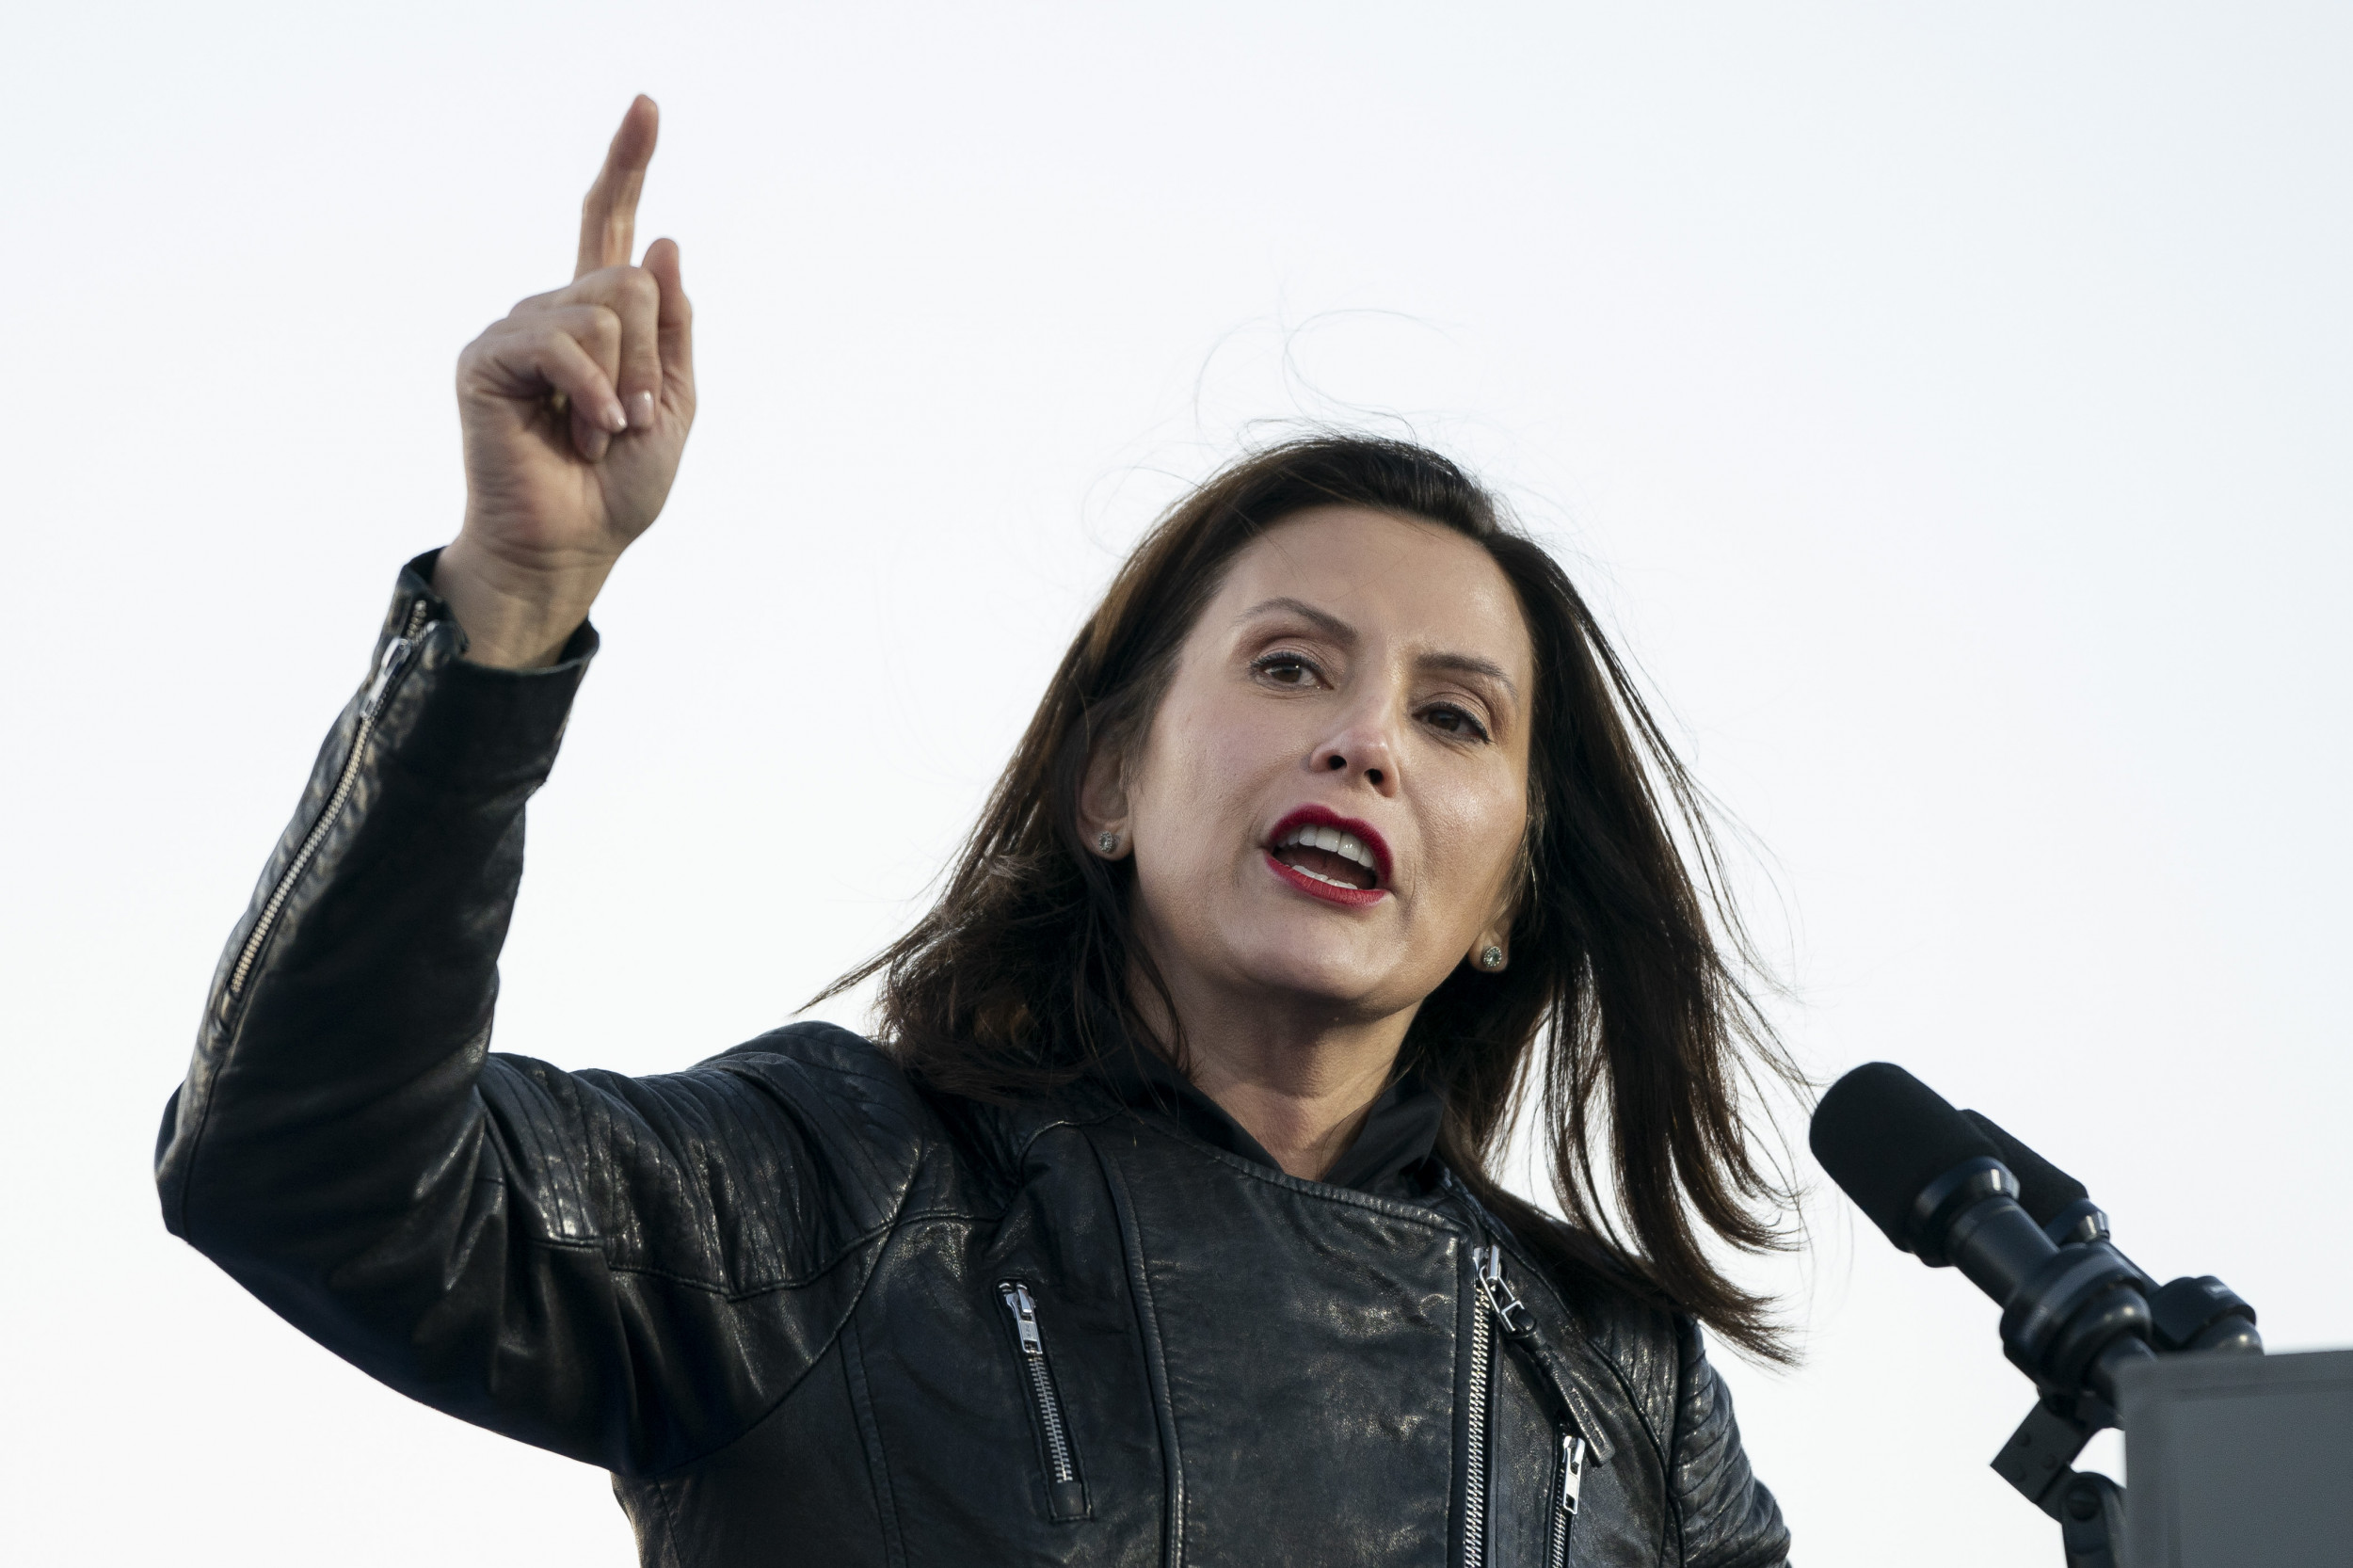 Michigan County Board supports impeaching Democratic Governor Whitmer